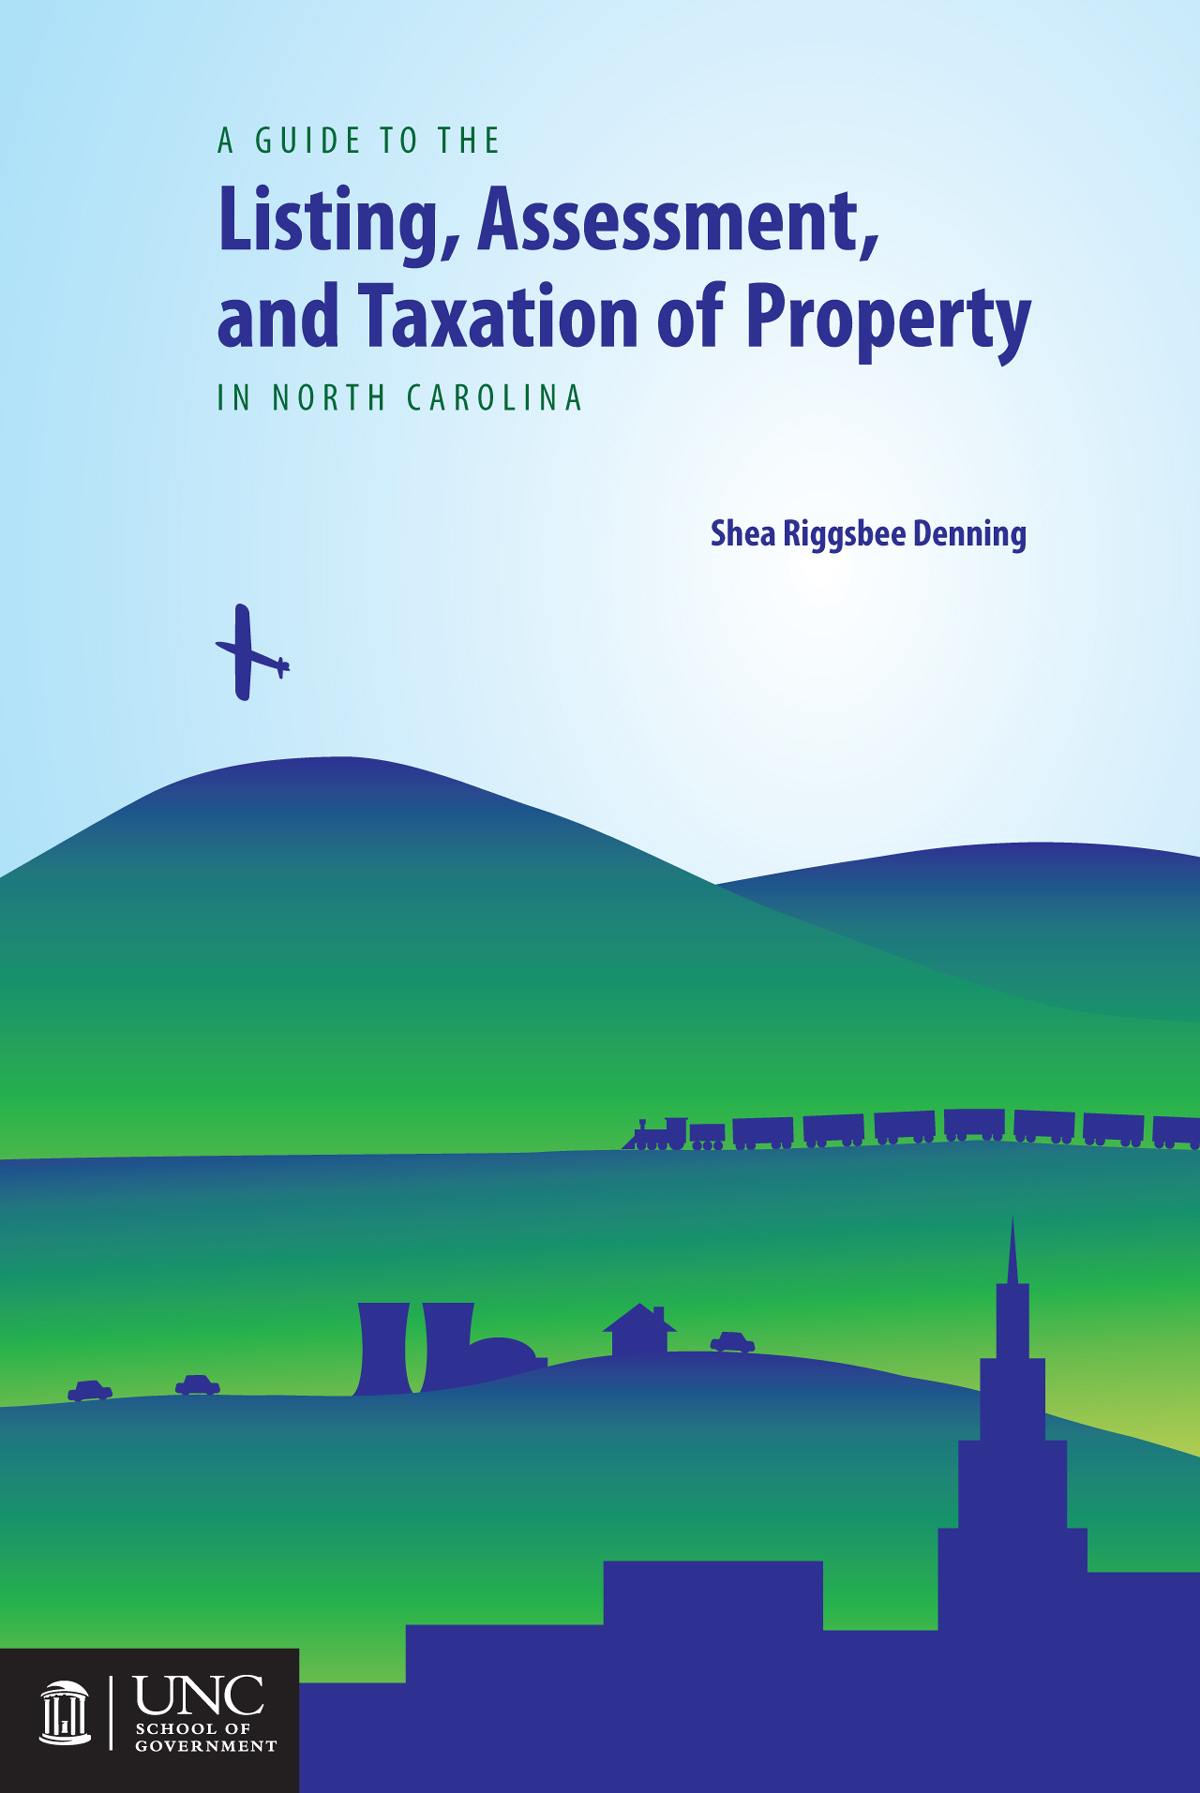 Cover image for Guide to the Listing, Assessment, and Taxation of Property in North Carolina